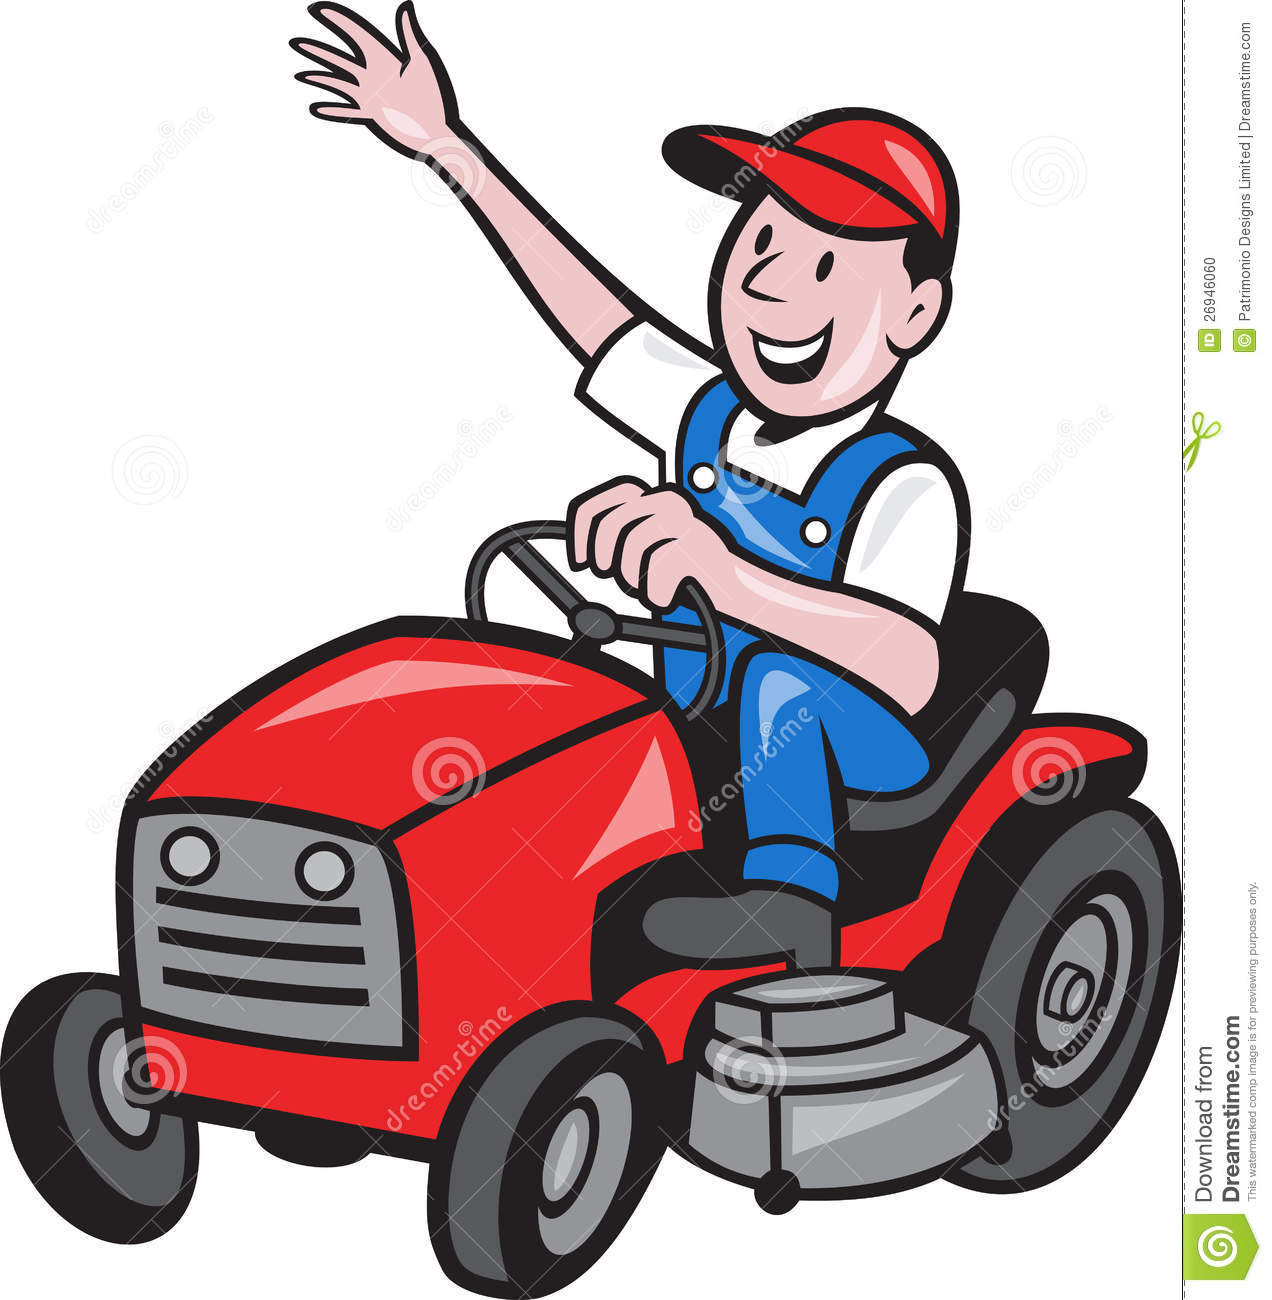 Cartoon Riding Lawn Mower Farmer Driving Ride On Mower